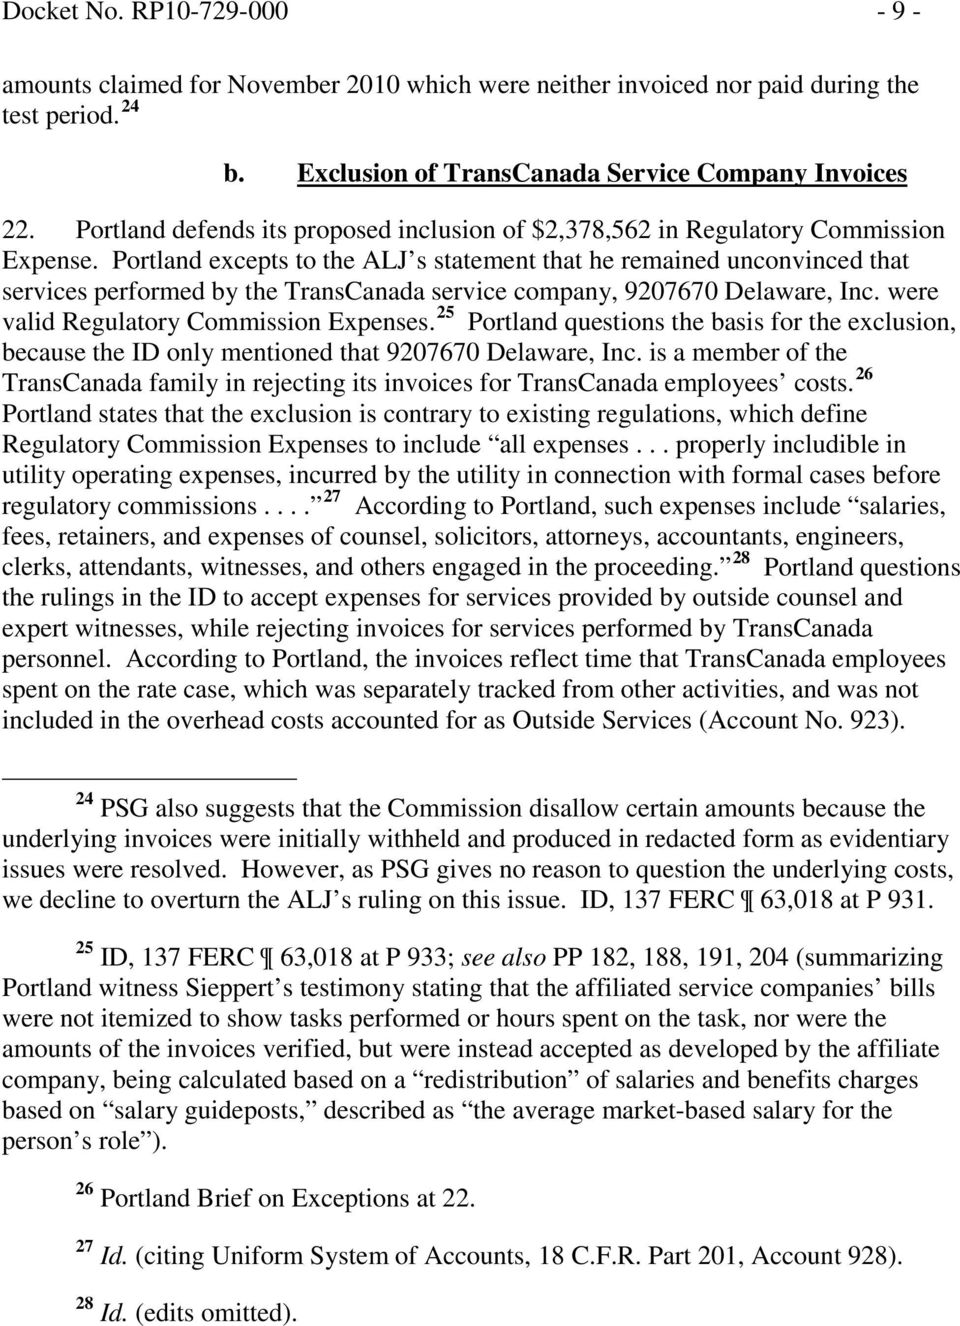 Portland excepts to the ALJ s statement that he remained unconvinced that services performed by the TransCanada service company, 9207670 Delaware, Inc. were valid Regulatory Commission Expenses.